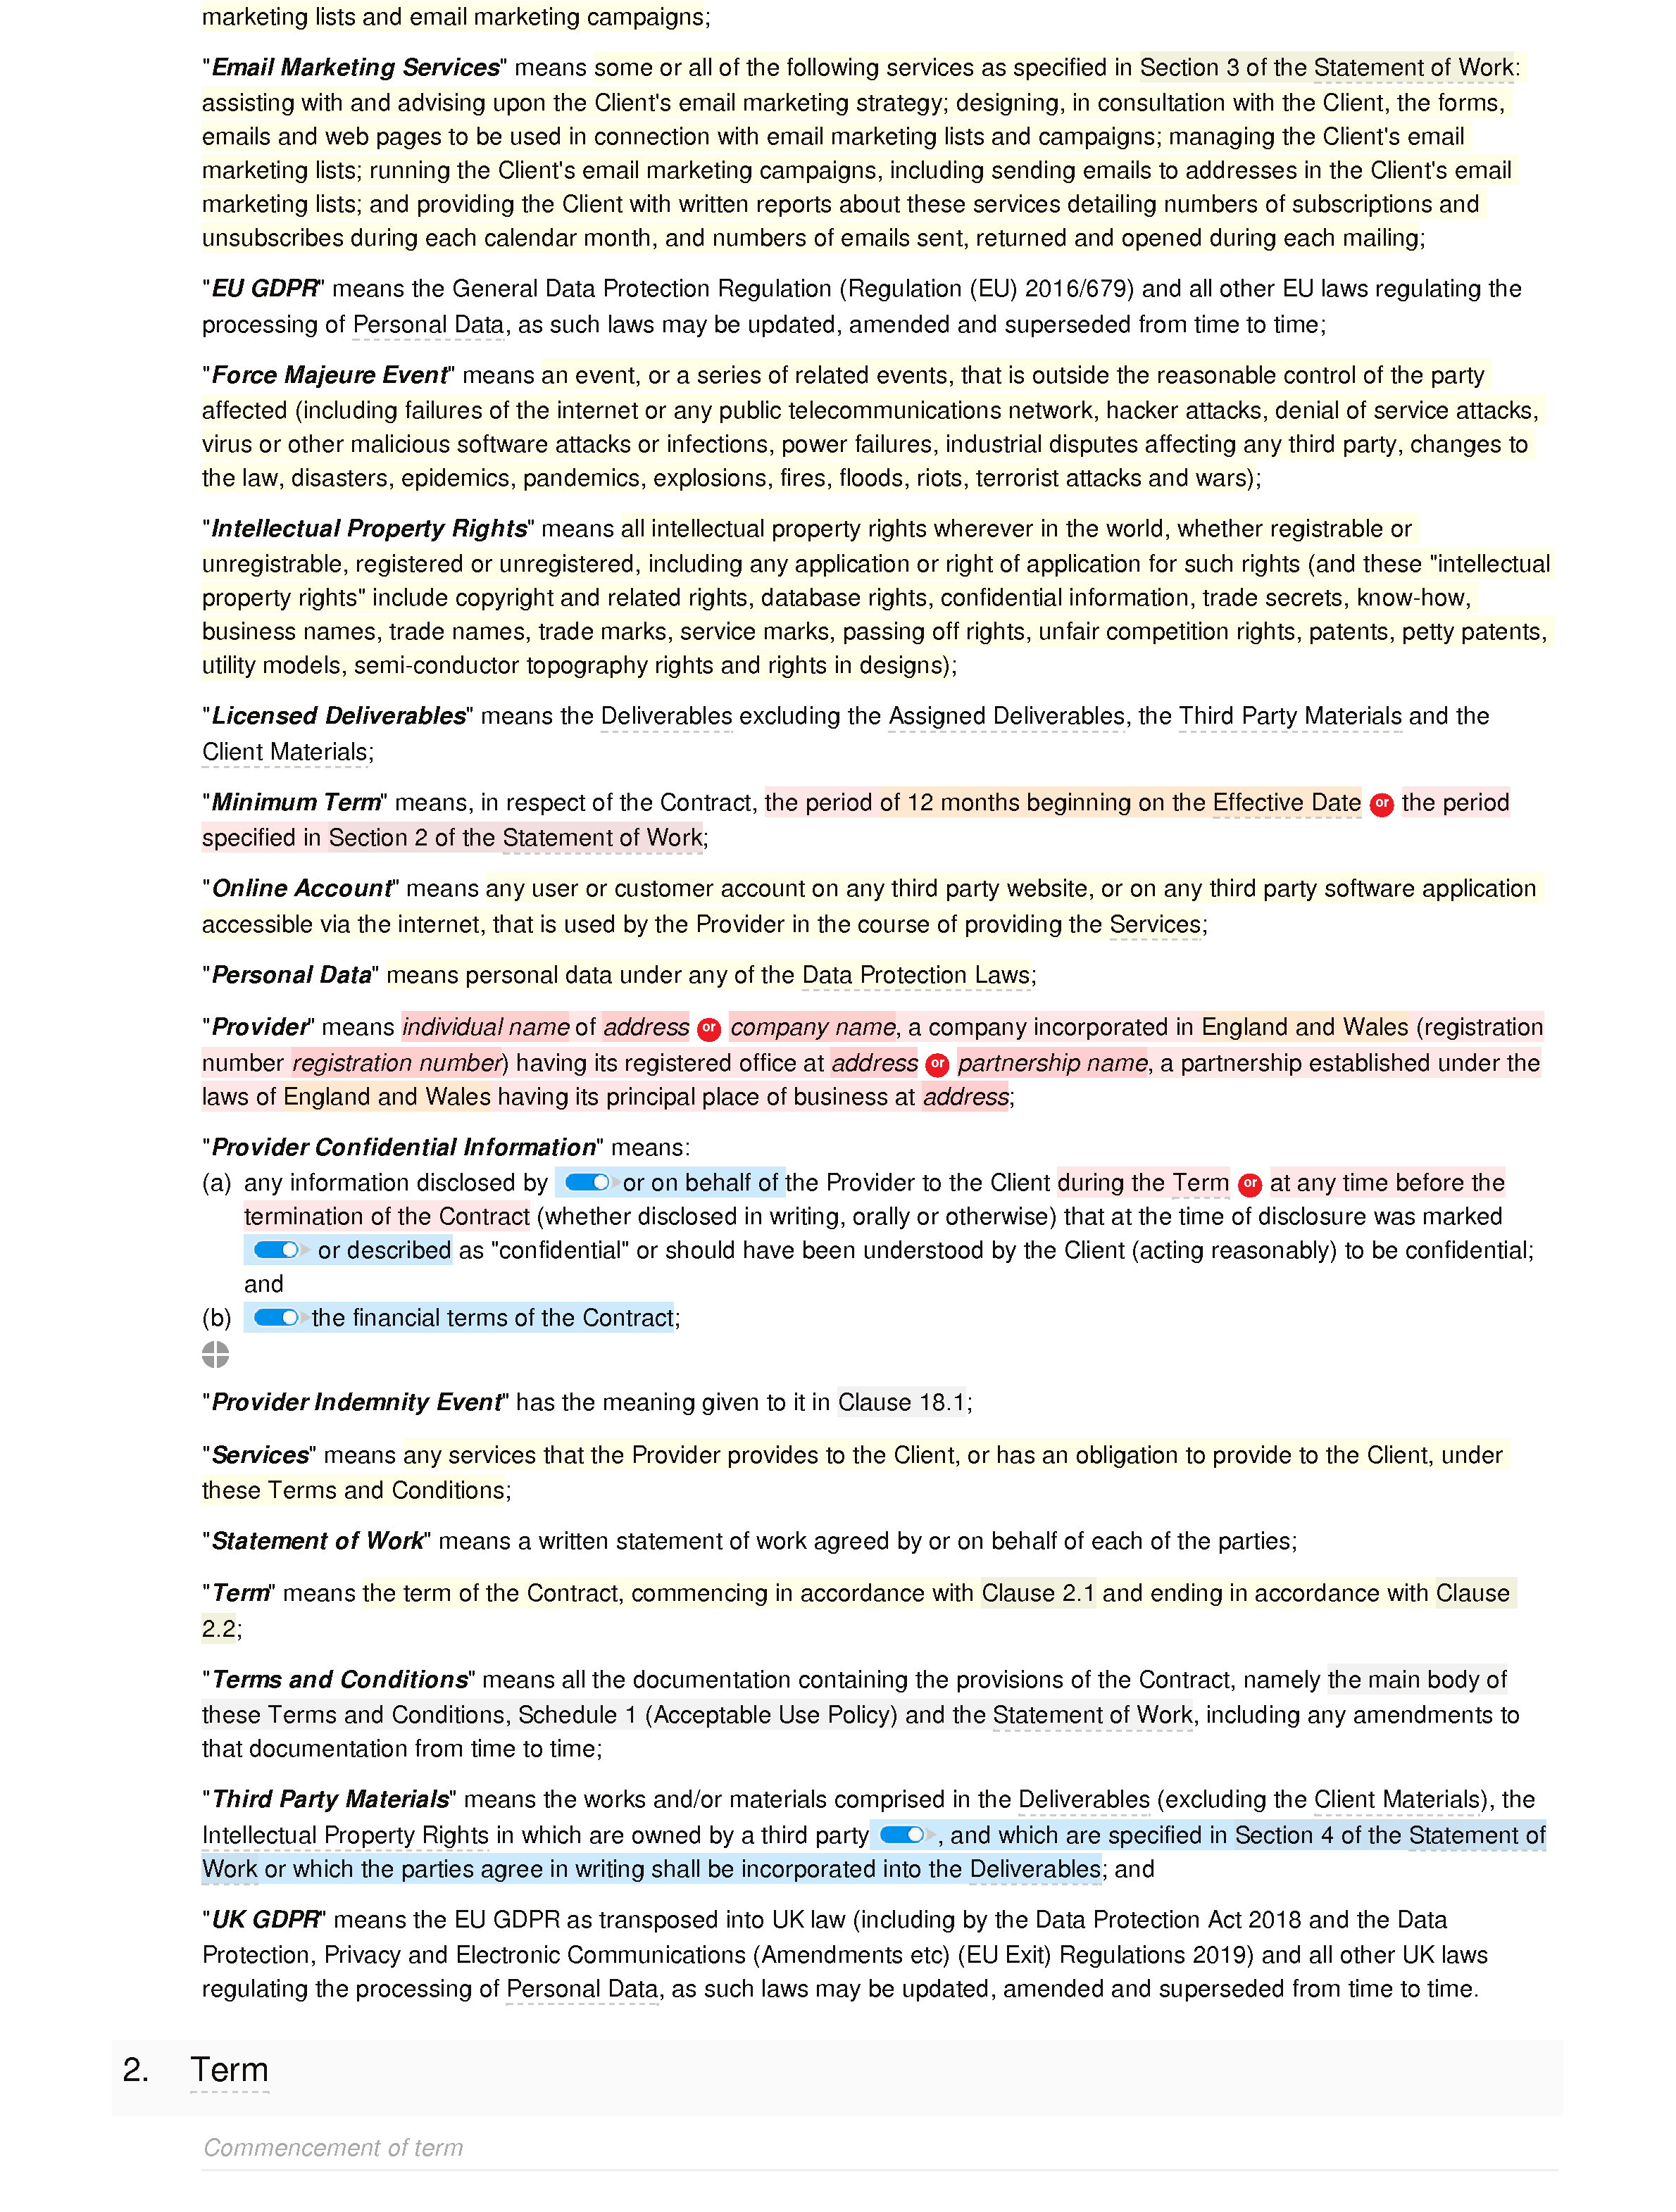 Email marketing terms and conditions document editor preview